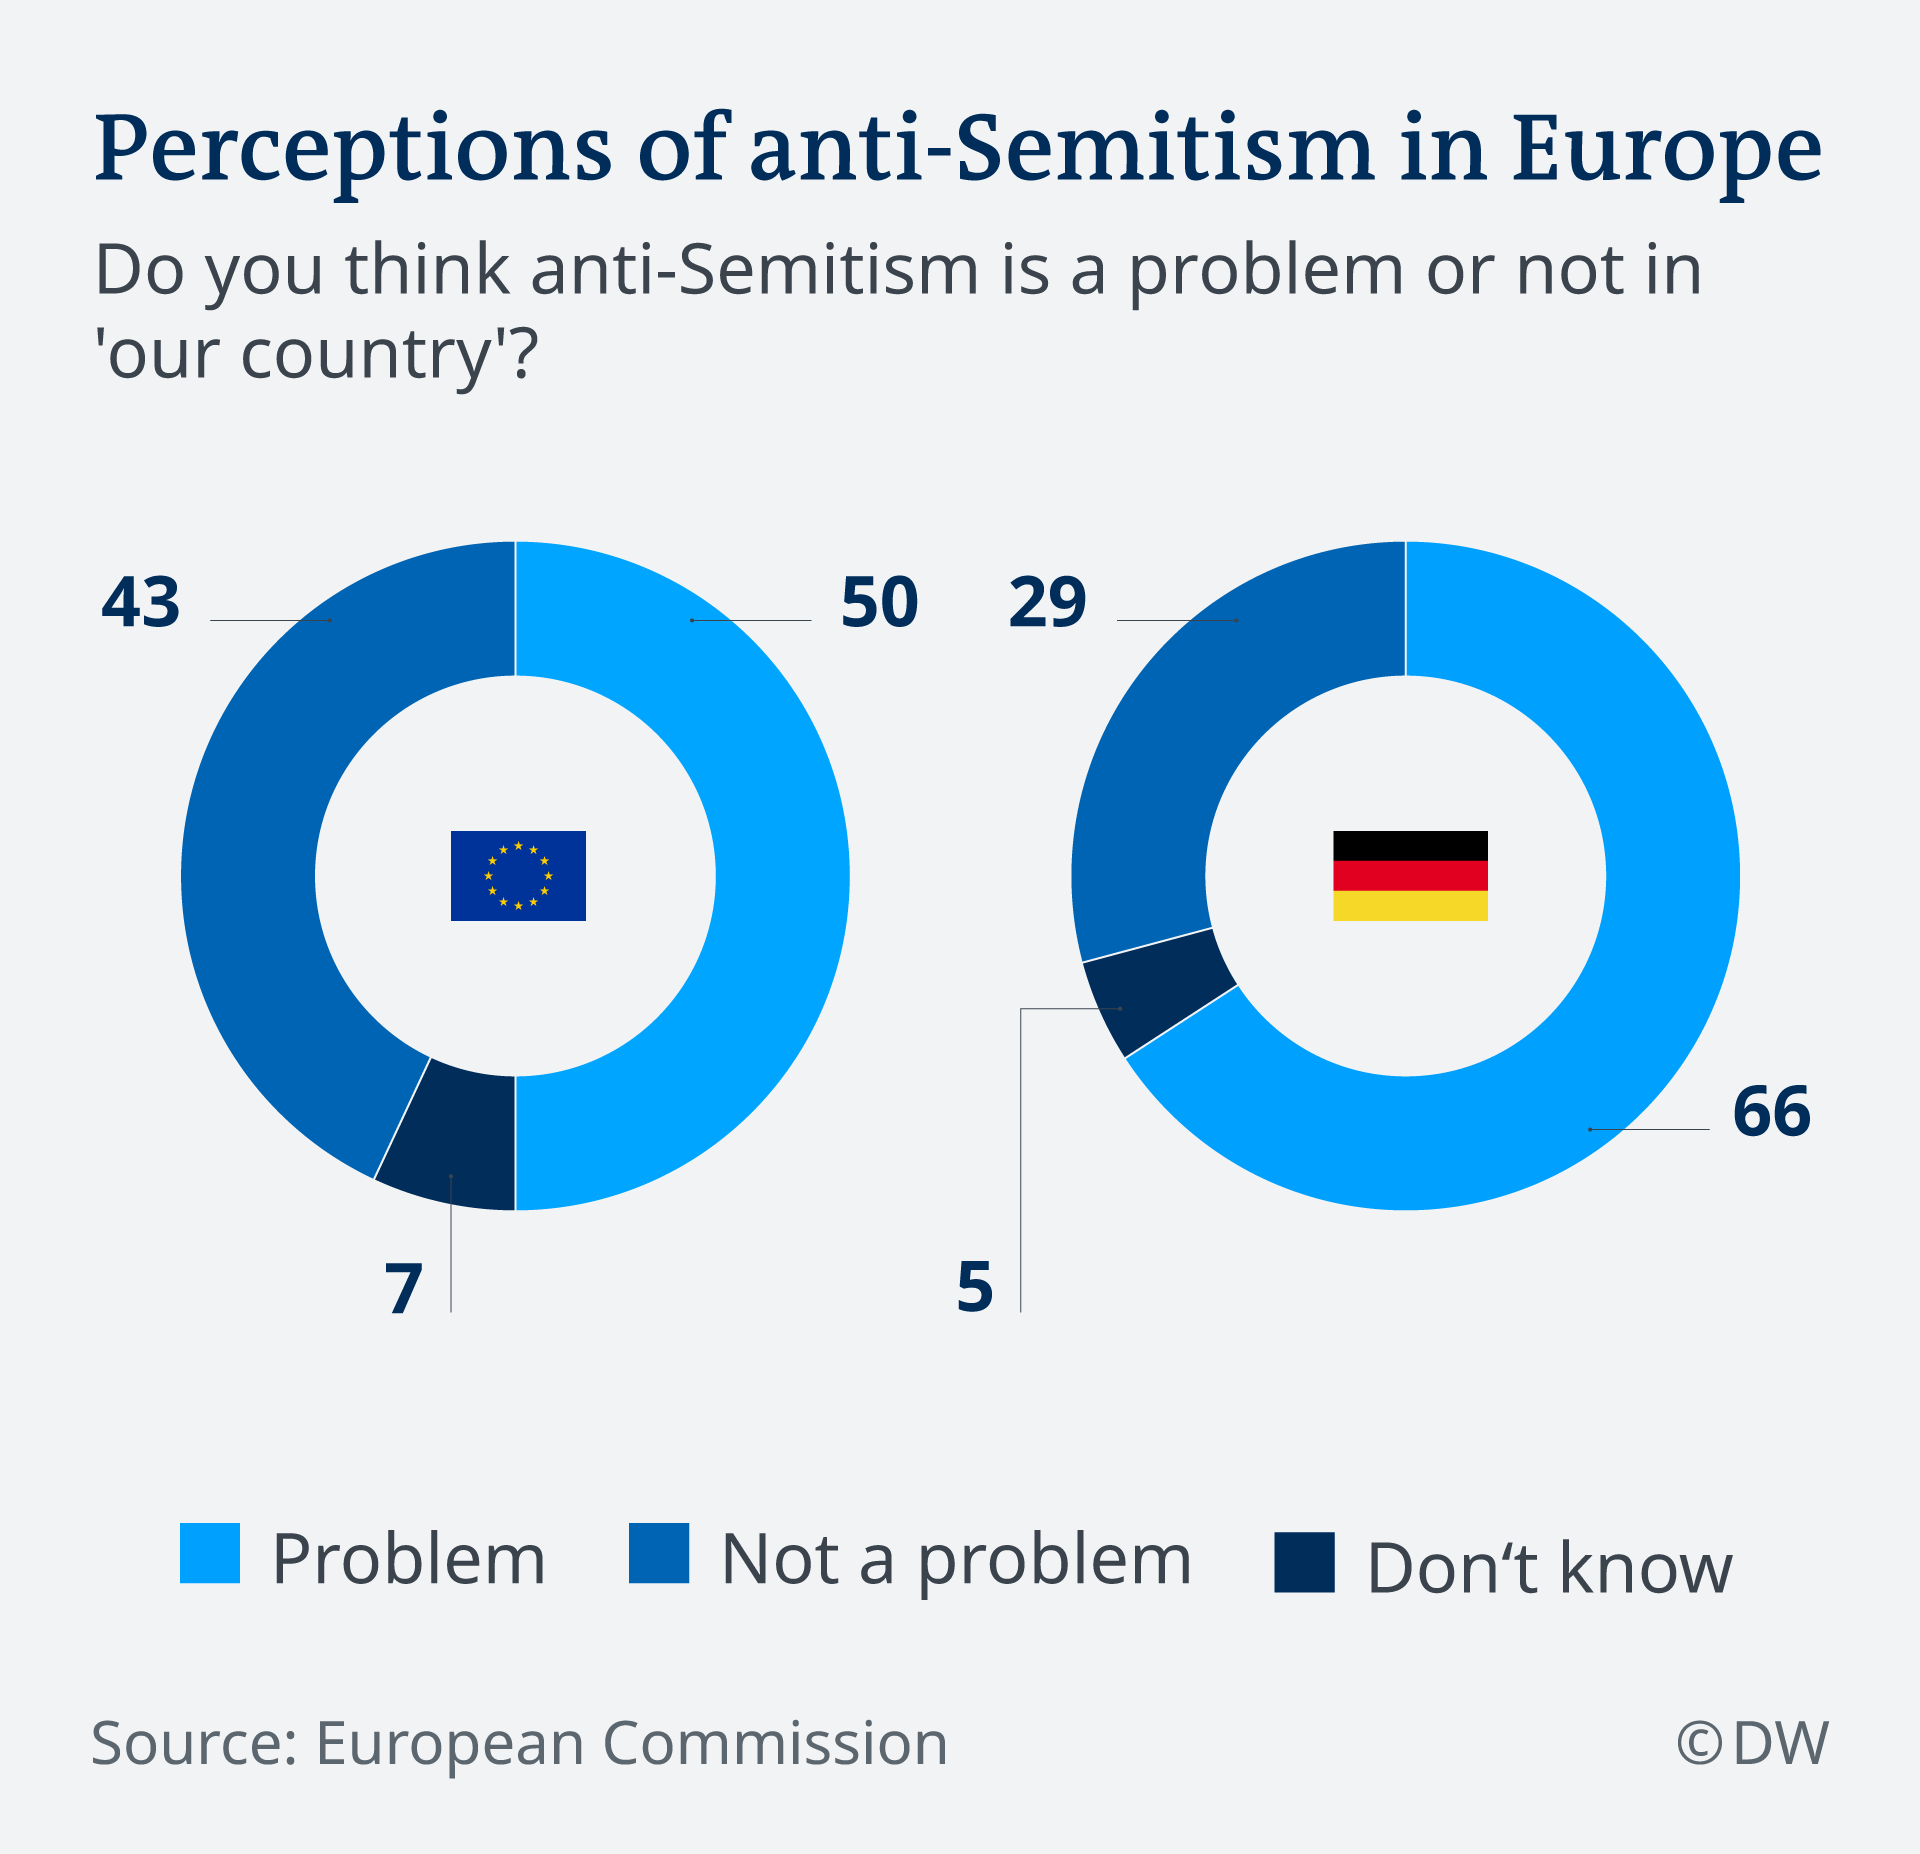 Infographic comparing perceptions of anti-Semitism in Germany with such perceptions in the EU in general